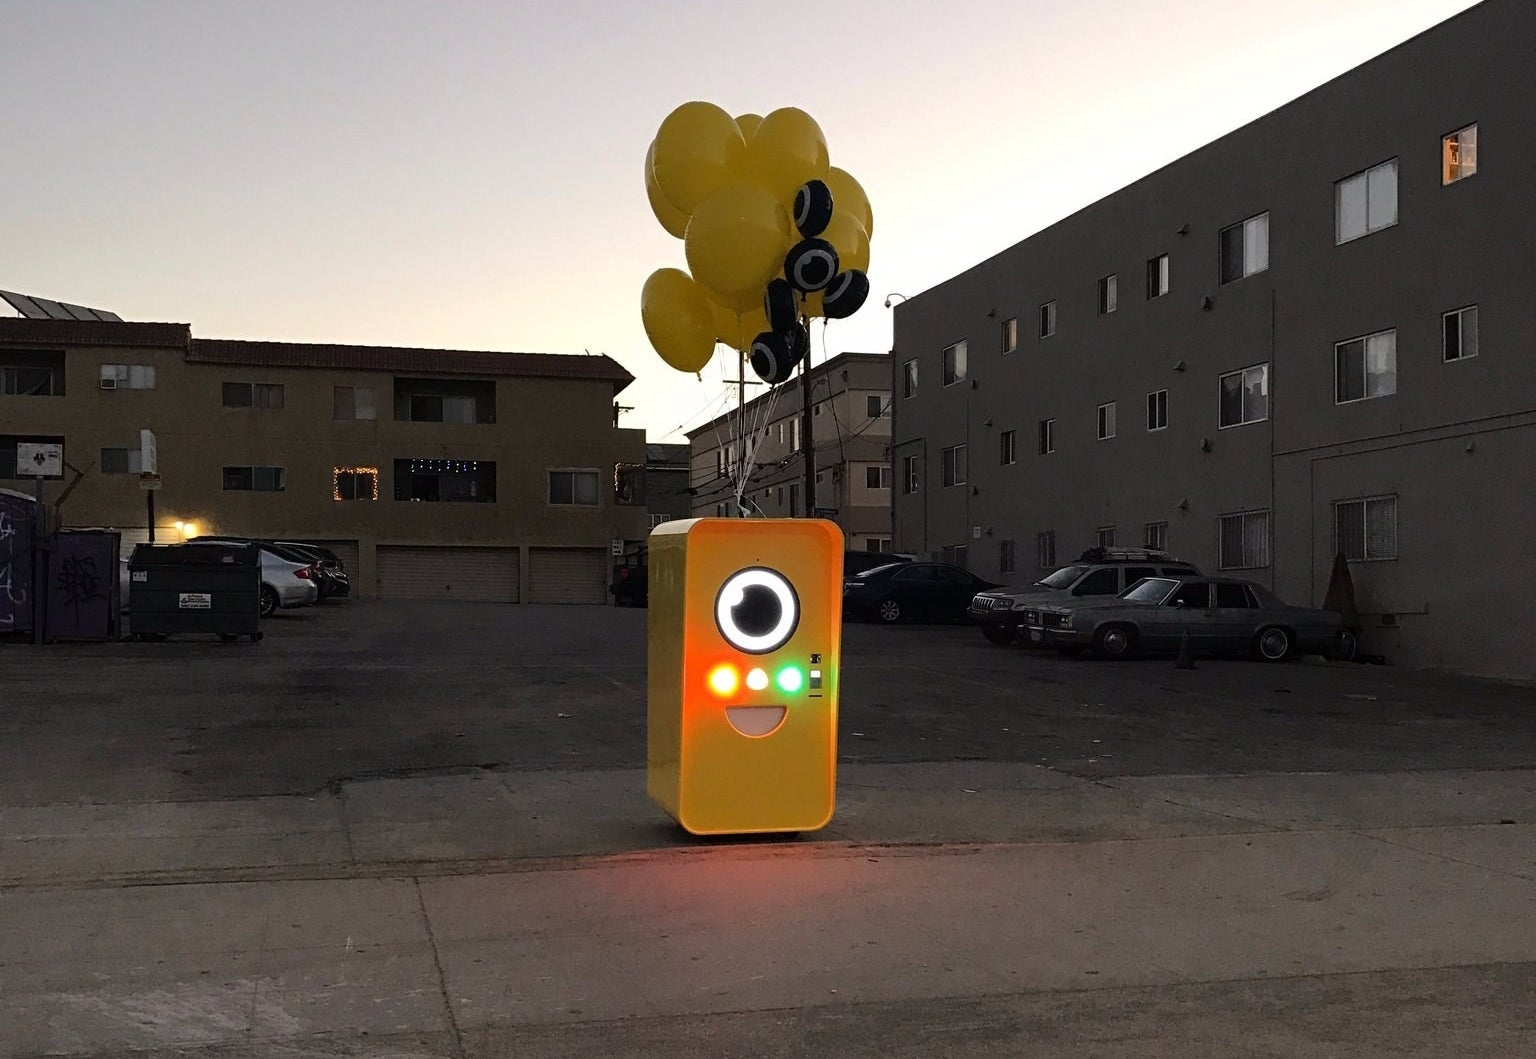 The Snapbot, a yellow Minion-shaped vending machine, has popped up in Venice Beach, CA.